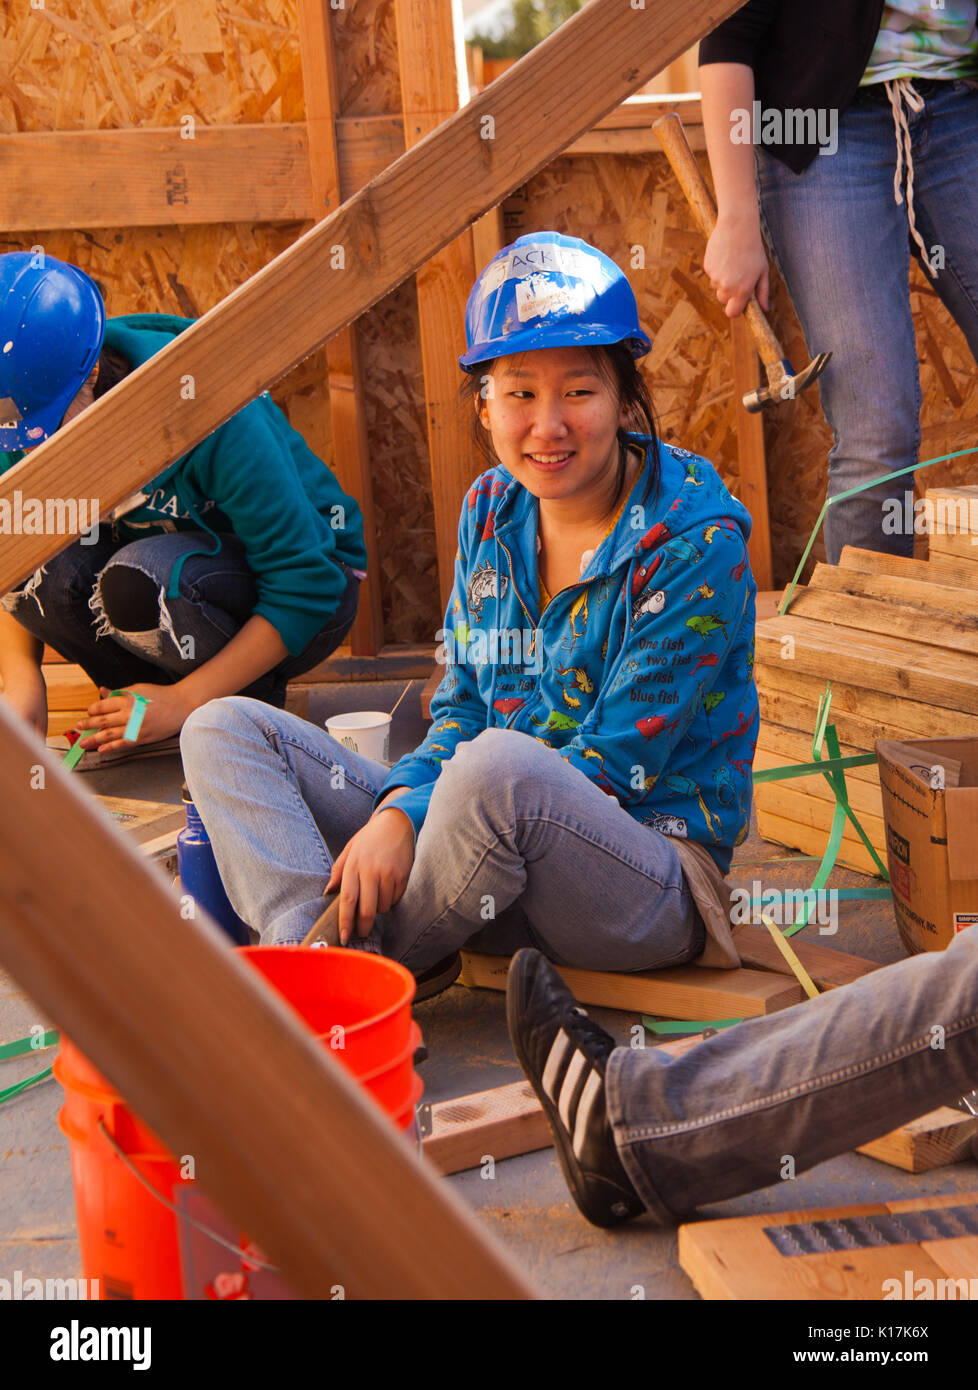 Woman talks while working for Habitat For Humanity. El Rincon, Oakland, Calif on Jan 22, 2011 - Stock Image